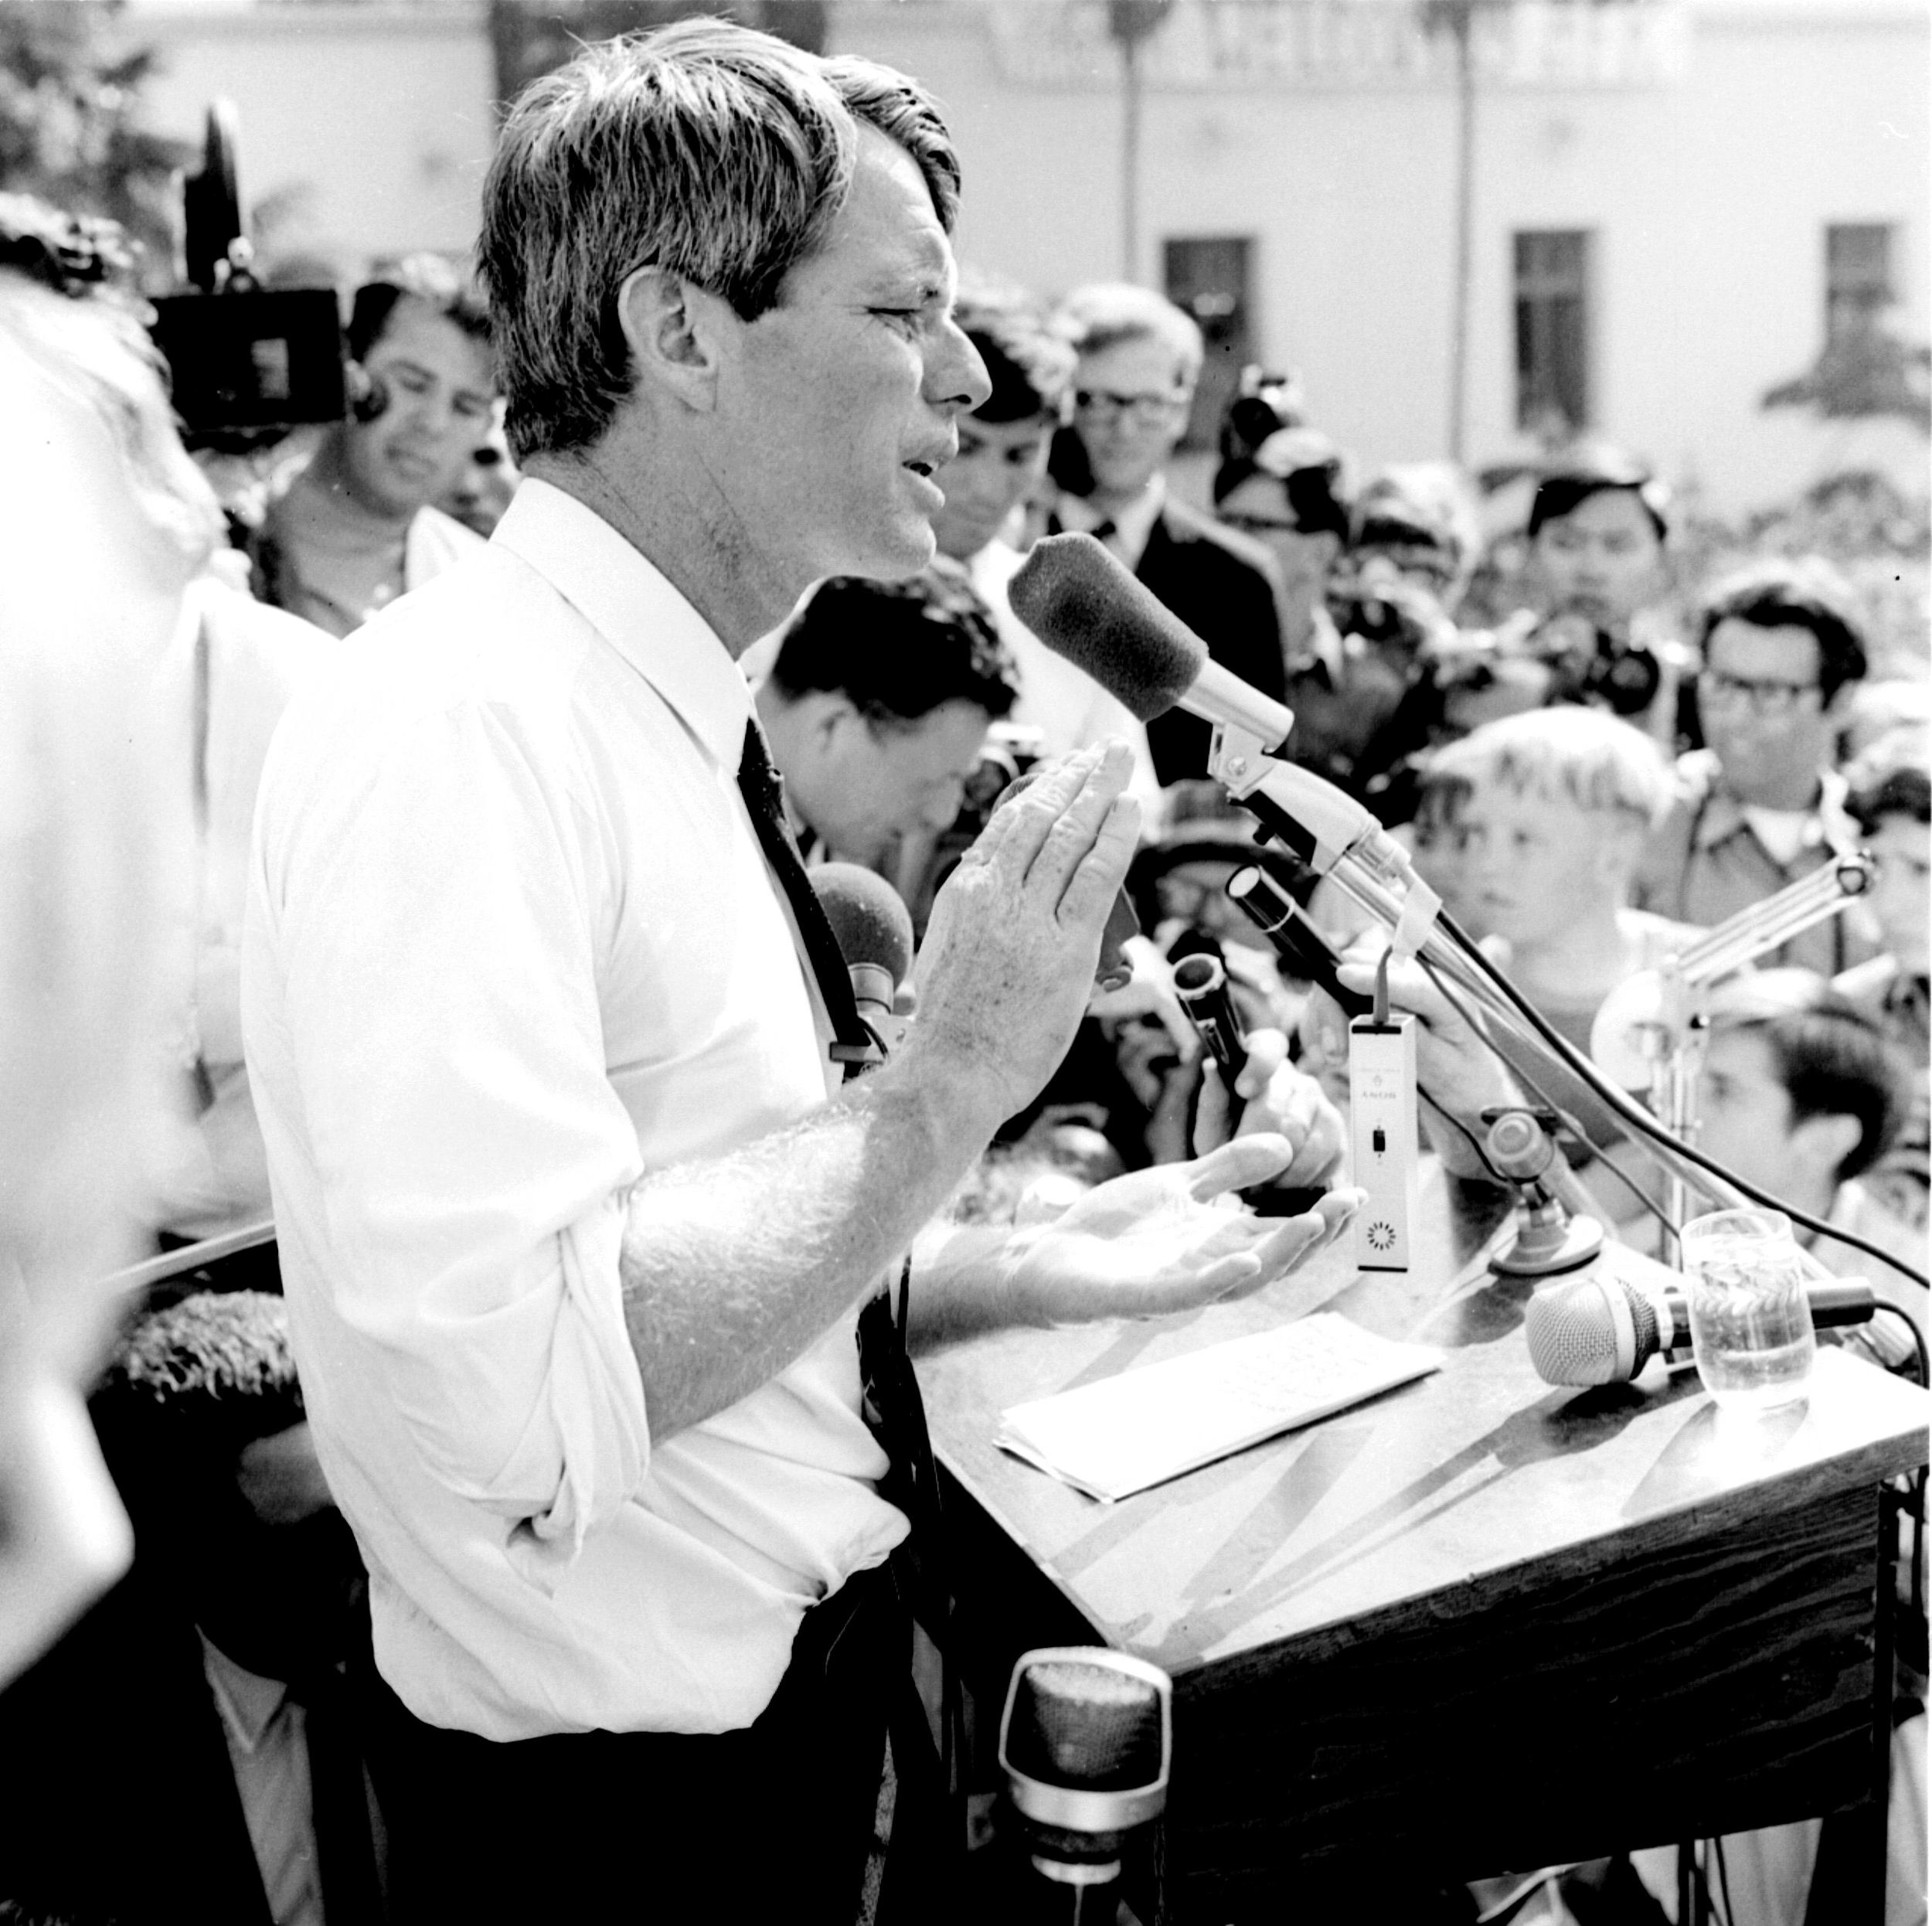 Robert F. Kennedy giving a speech in Los Angeles, California in the spring of 1968.